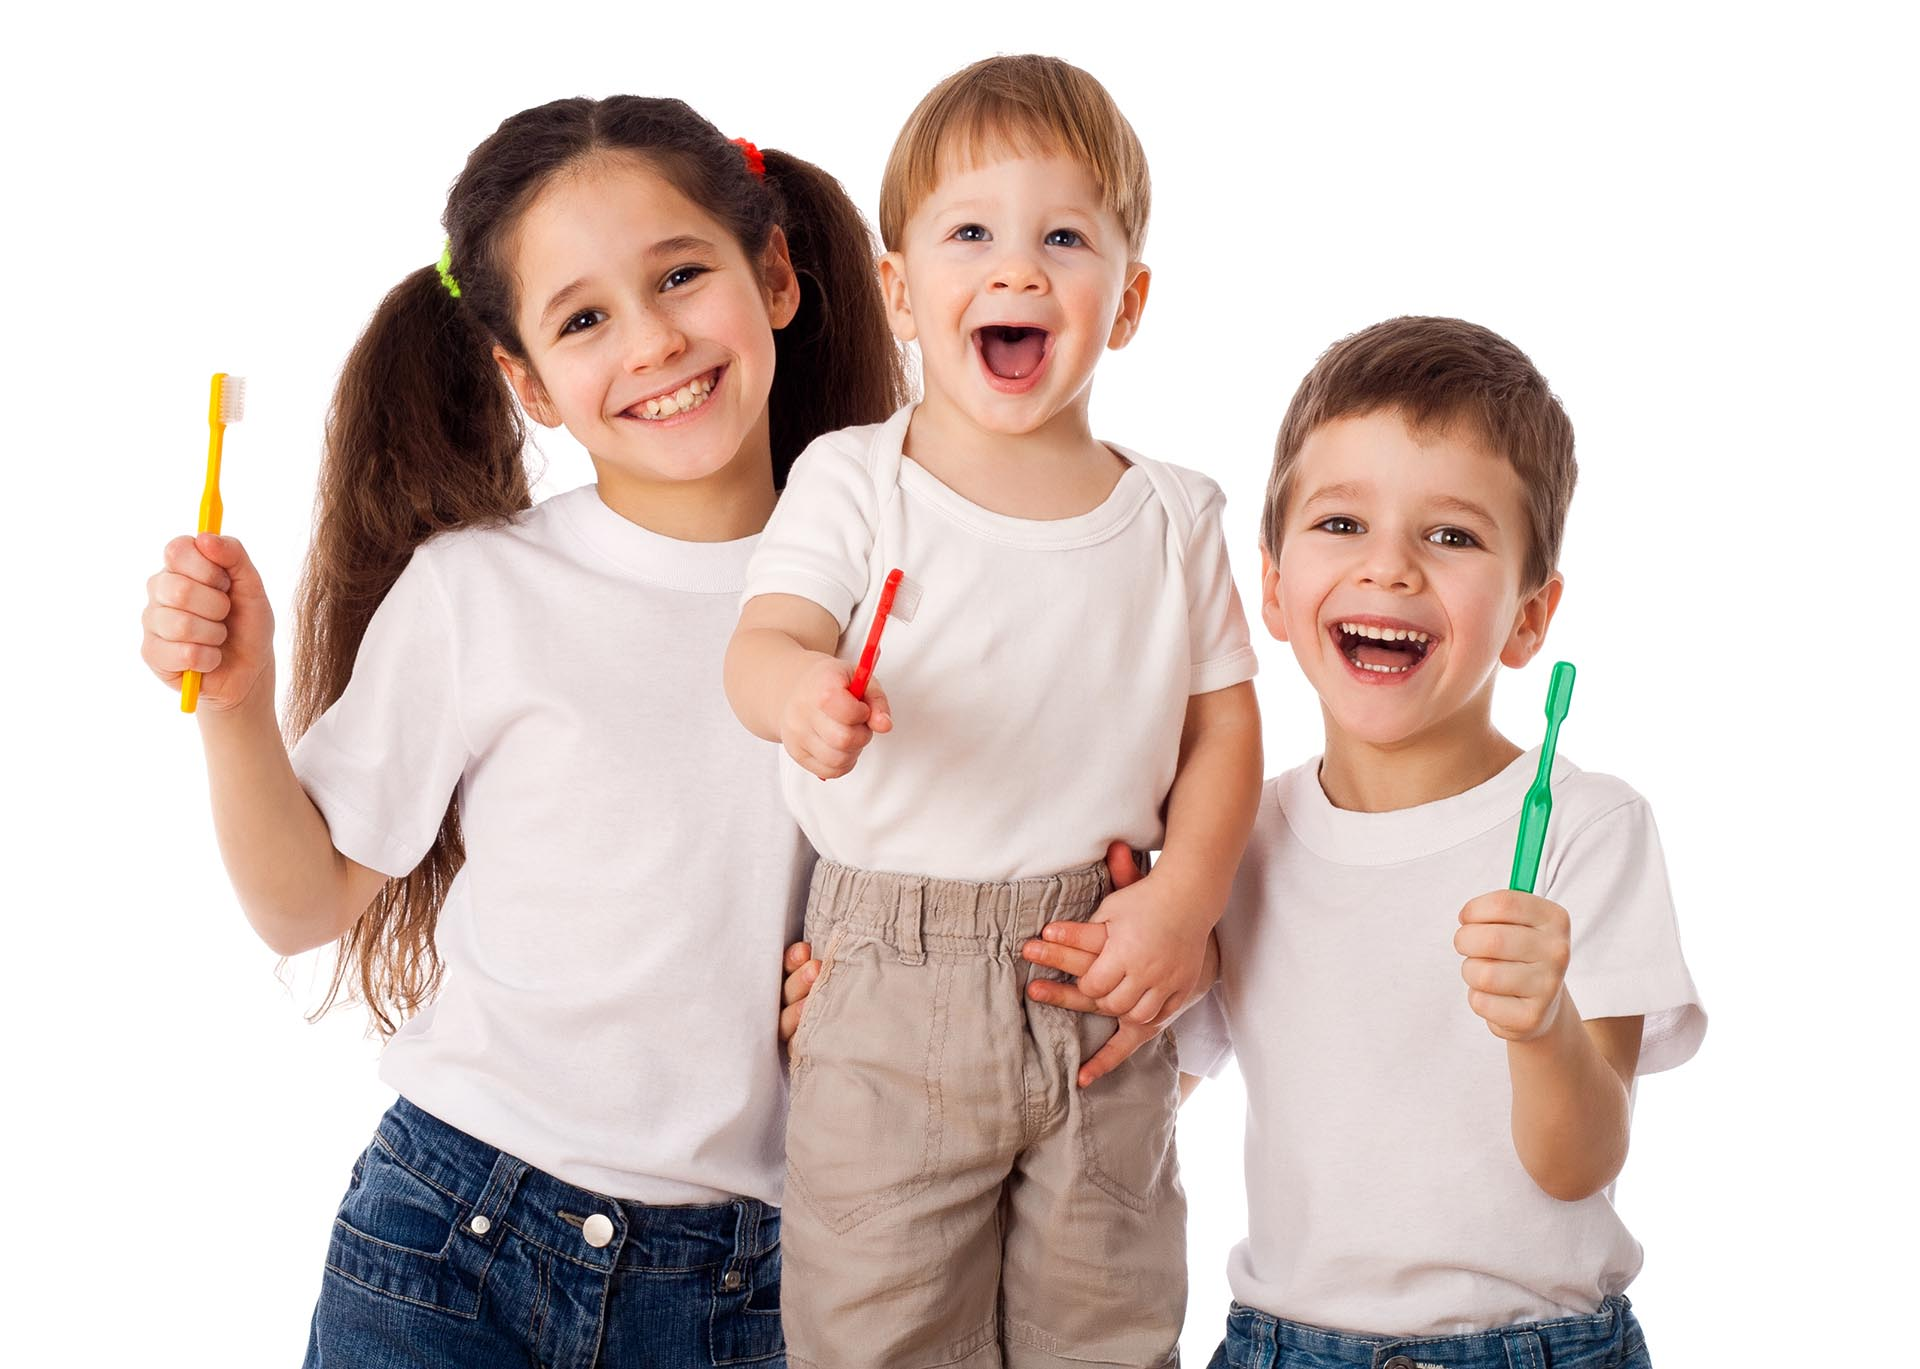 Membership for children - Children under 21 receive benefits for only £2.00 per month as long as one parent is a member.